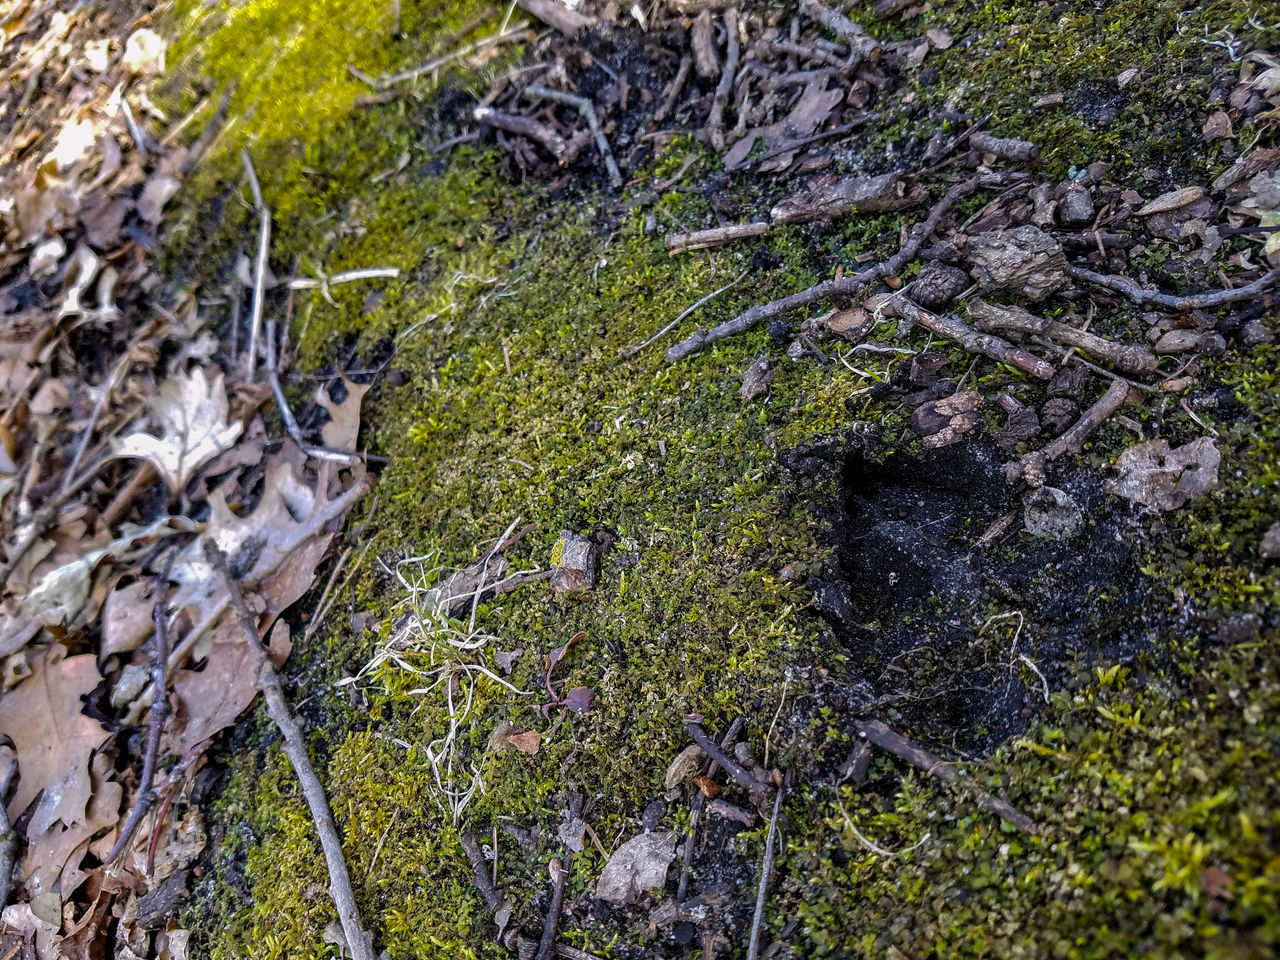 Nature No People Growth Textured  Backgrounds Close-up Day Outdoors Beauty In Nature Forest Path Park Freshness Explore Deer Tracks March 2017 Springtime Spring Minnesota Koronis Regional Park Leaves Trail Moss Mossy Animal Track